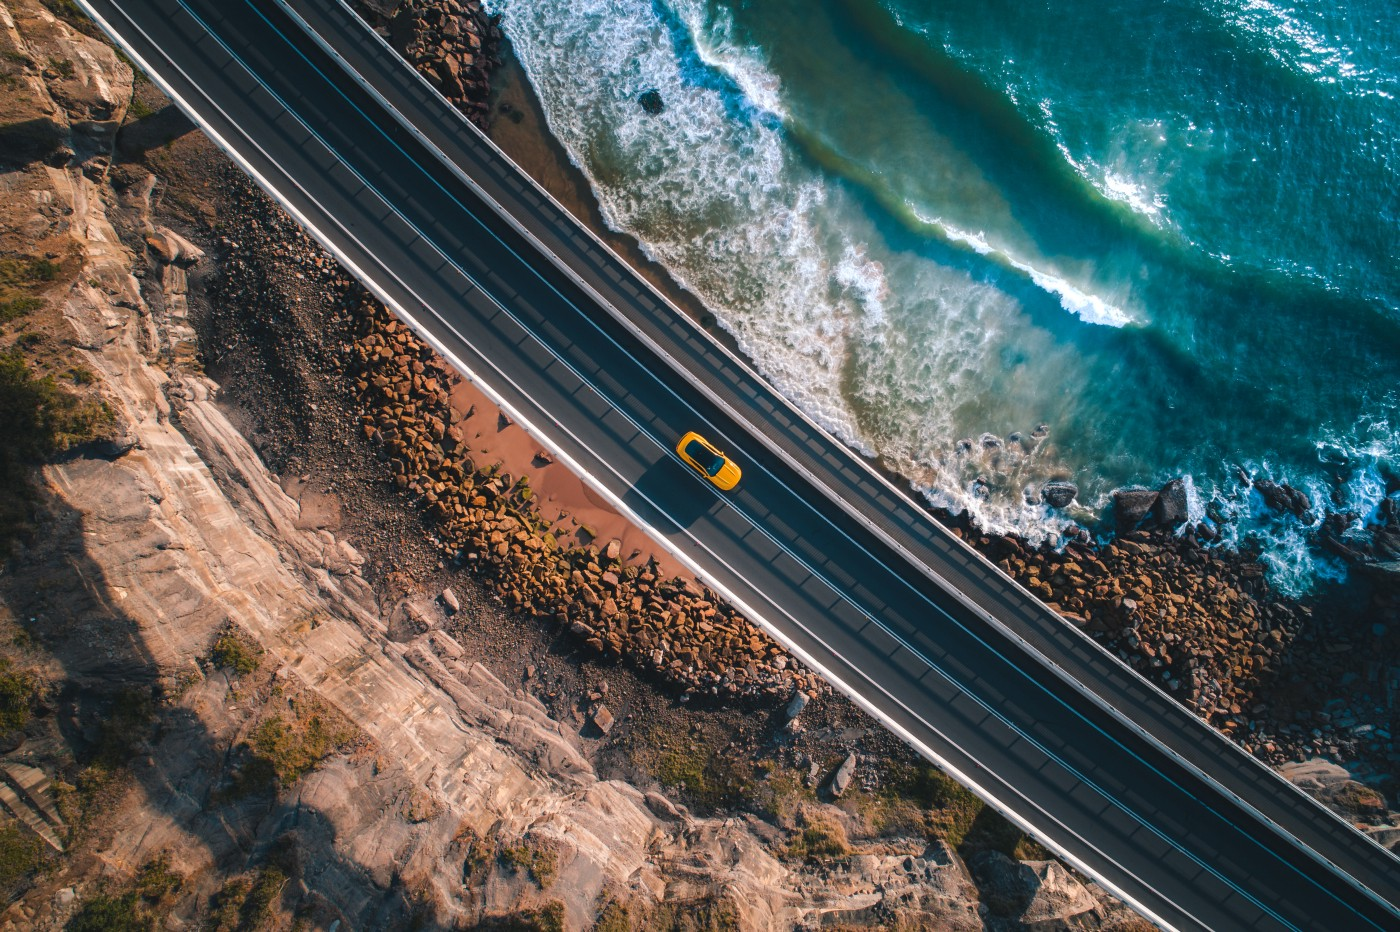 aerial photo of car driving on a highway next to the ocean